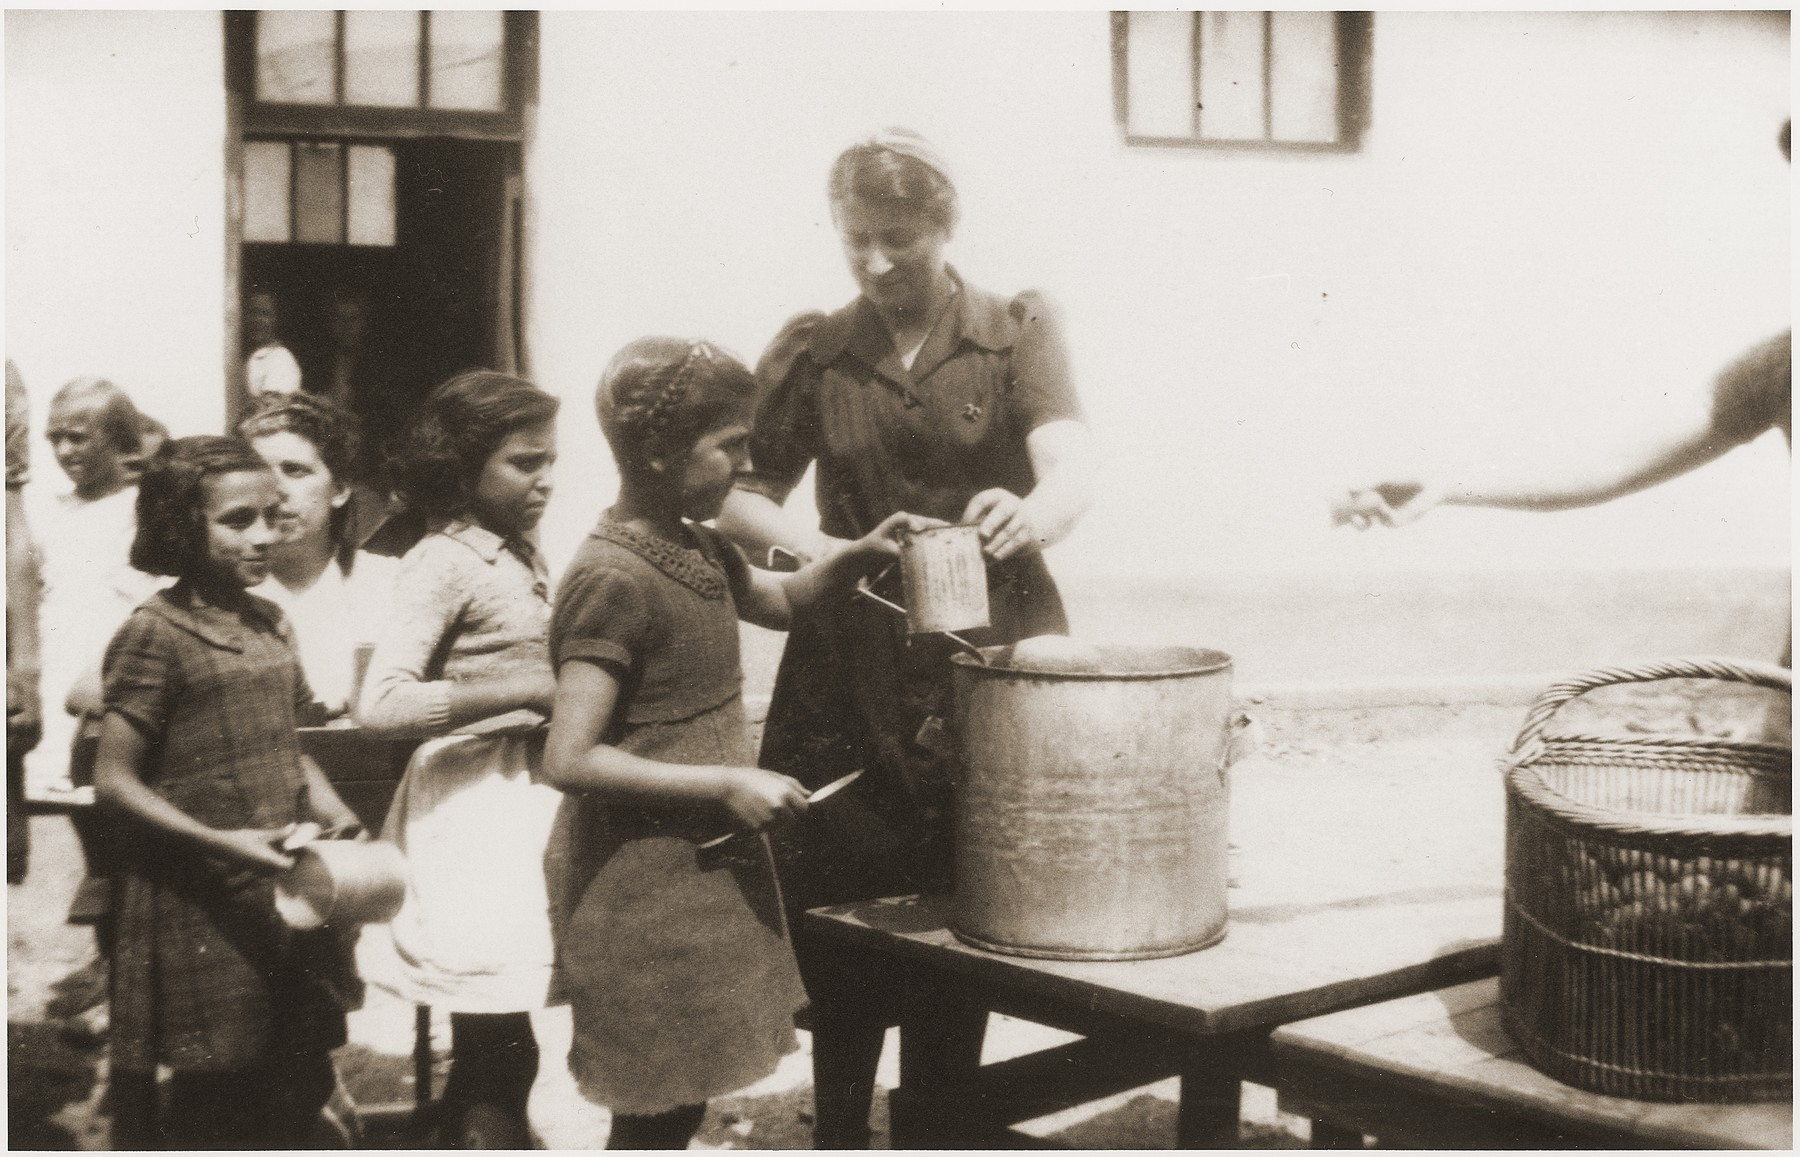 Children in the Rivesaltes transit camp receive food from Secours Suisse.